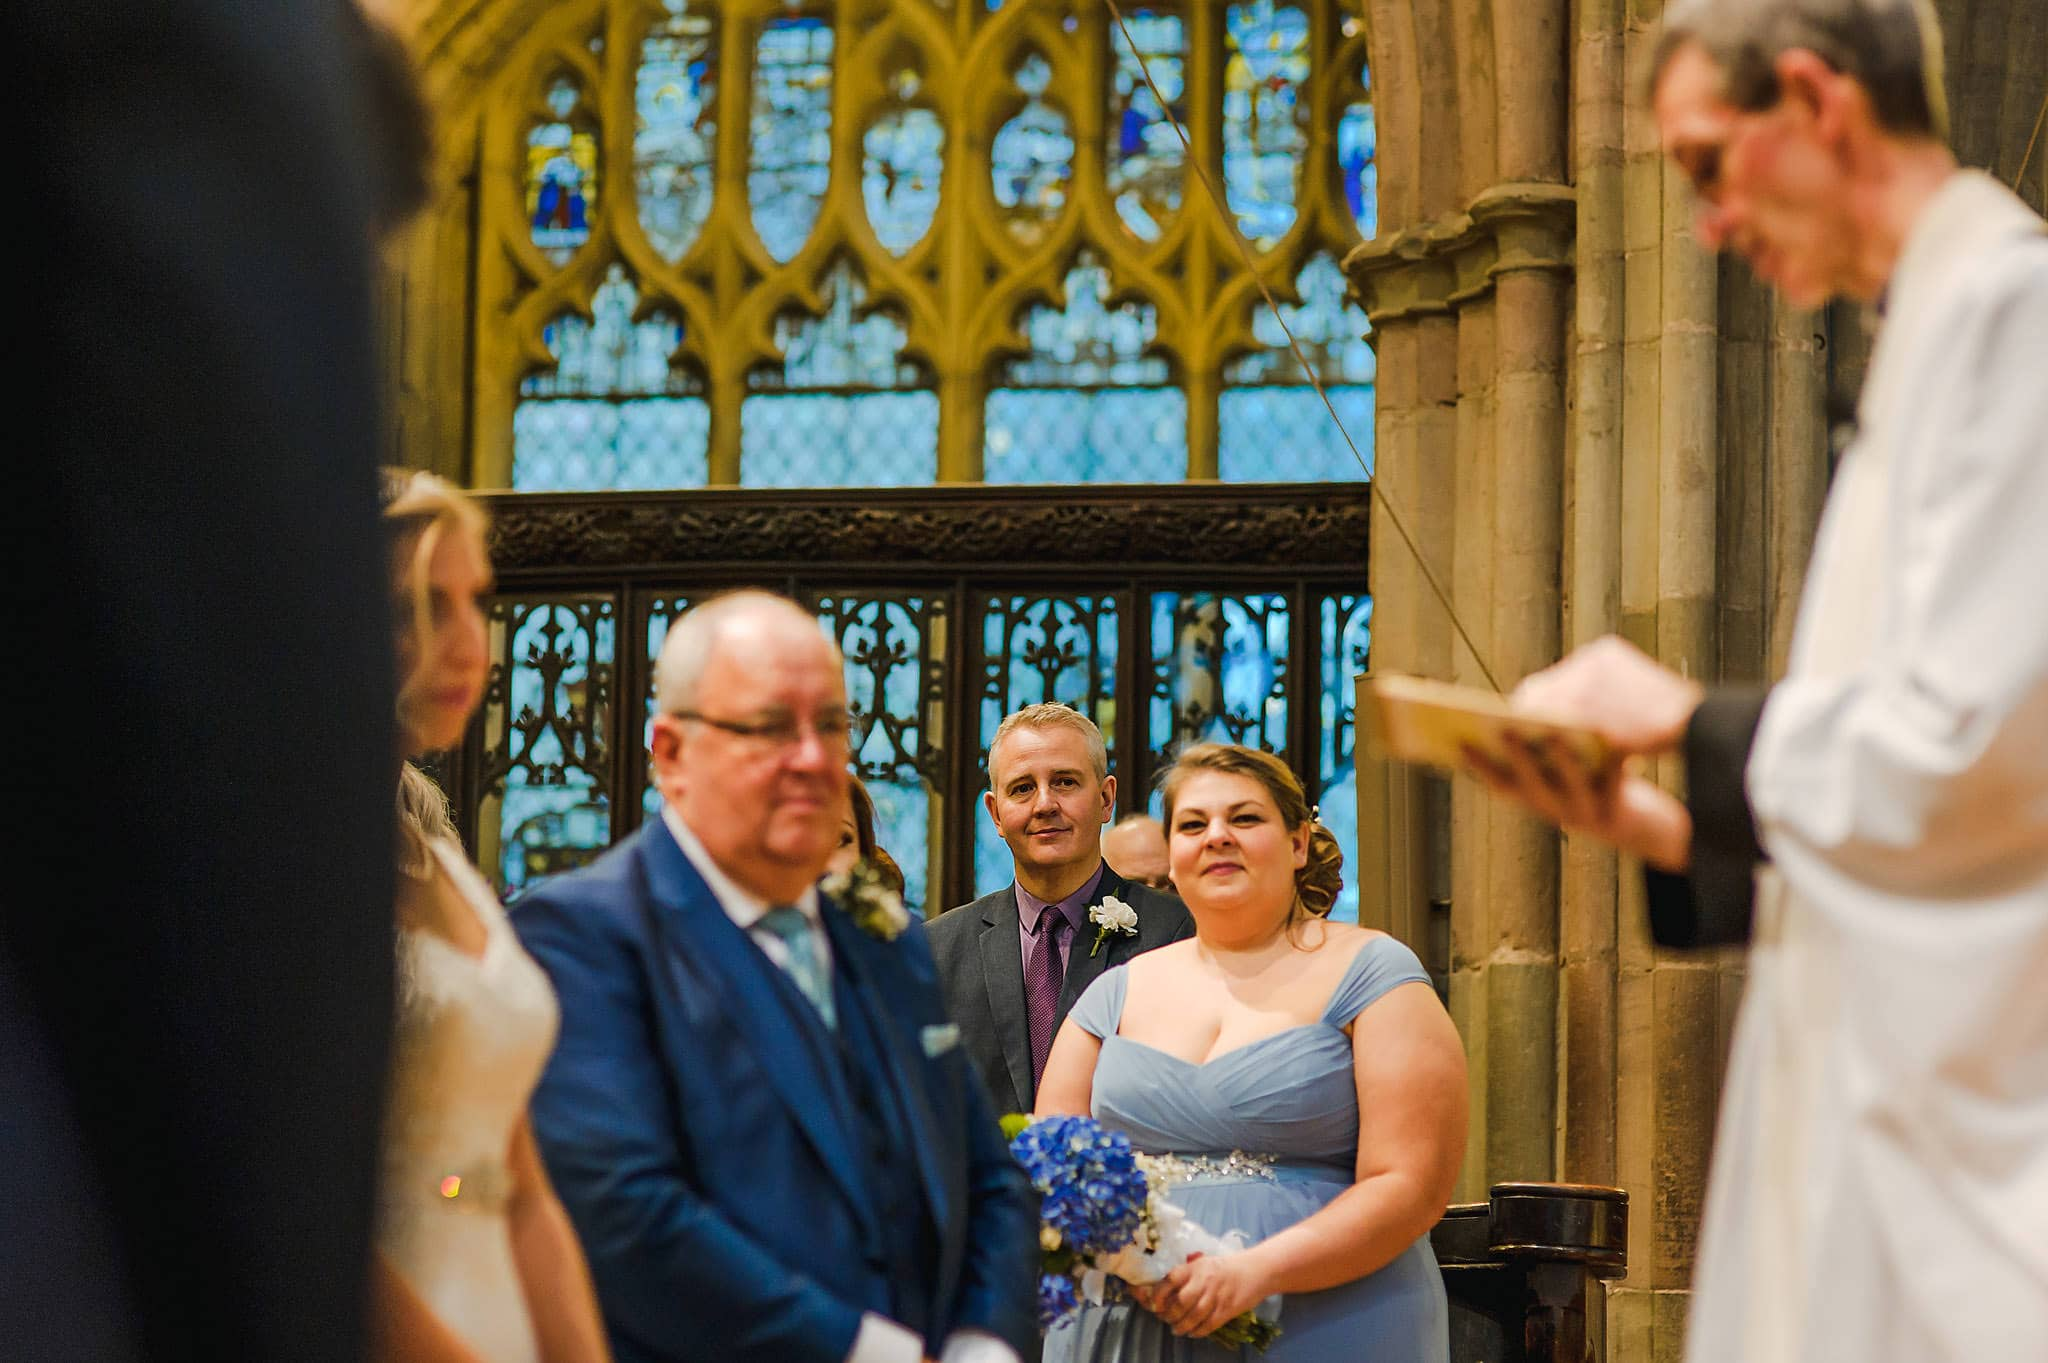 deer park hall wedding 39c - Deer Park Hall - Wedding Photography West Midlands